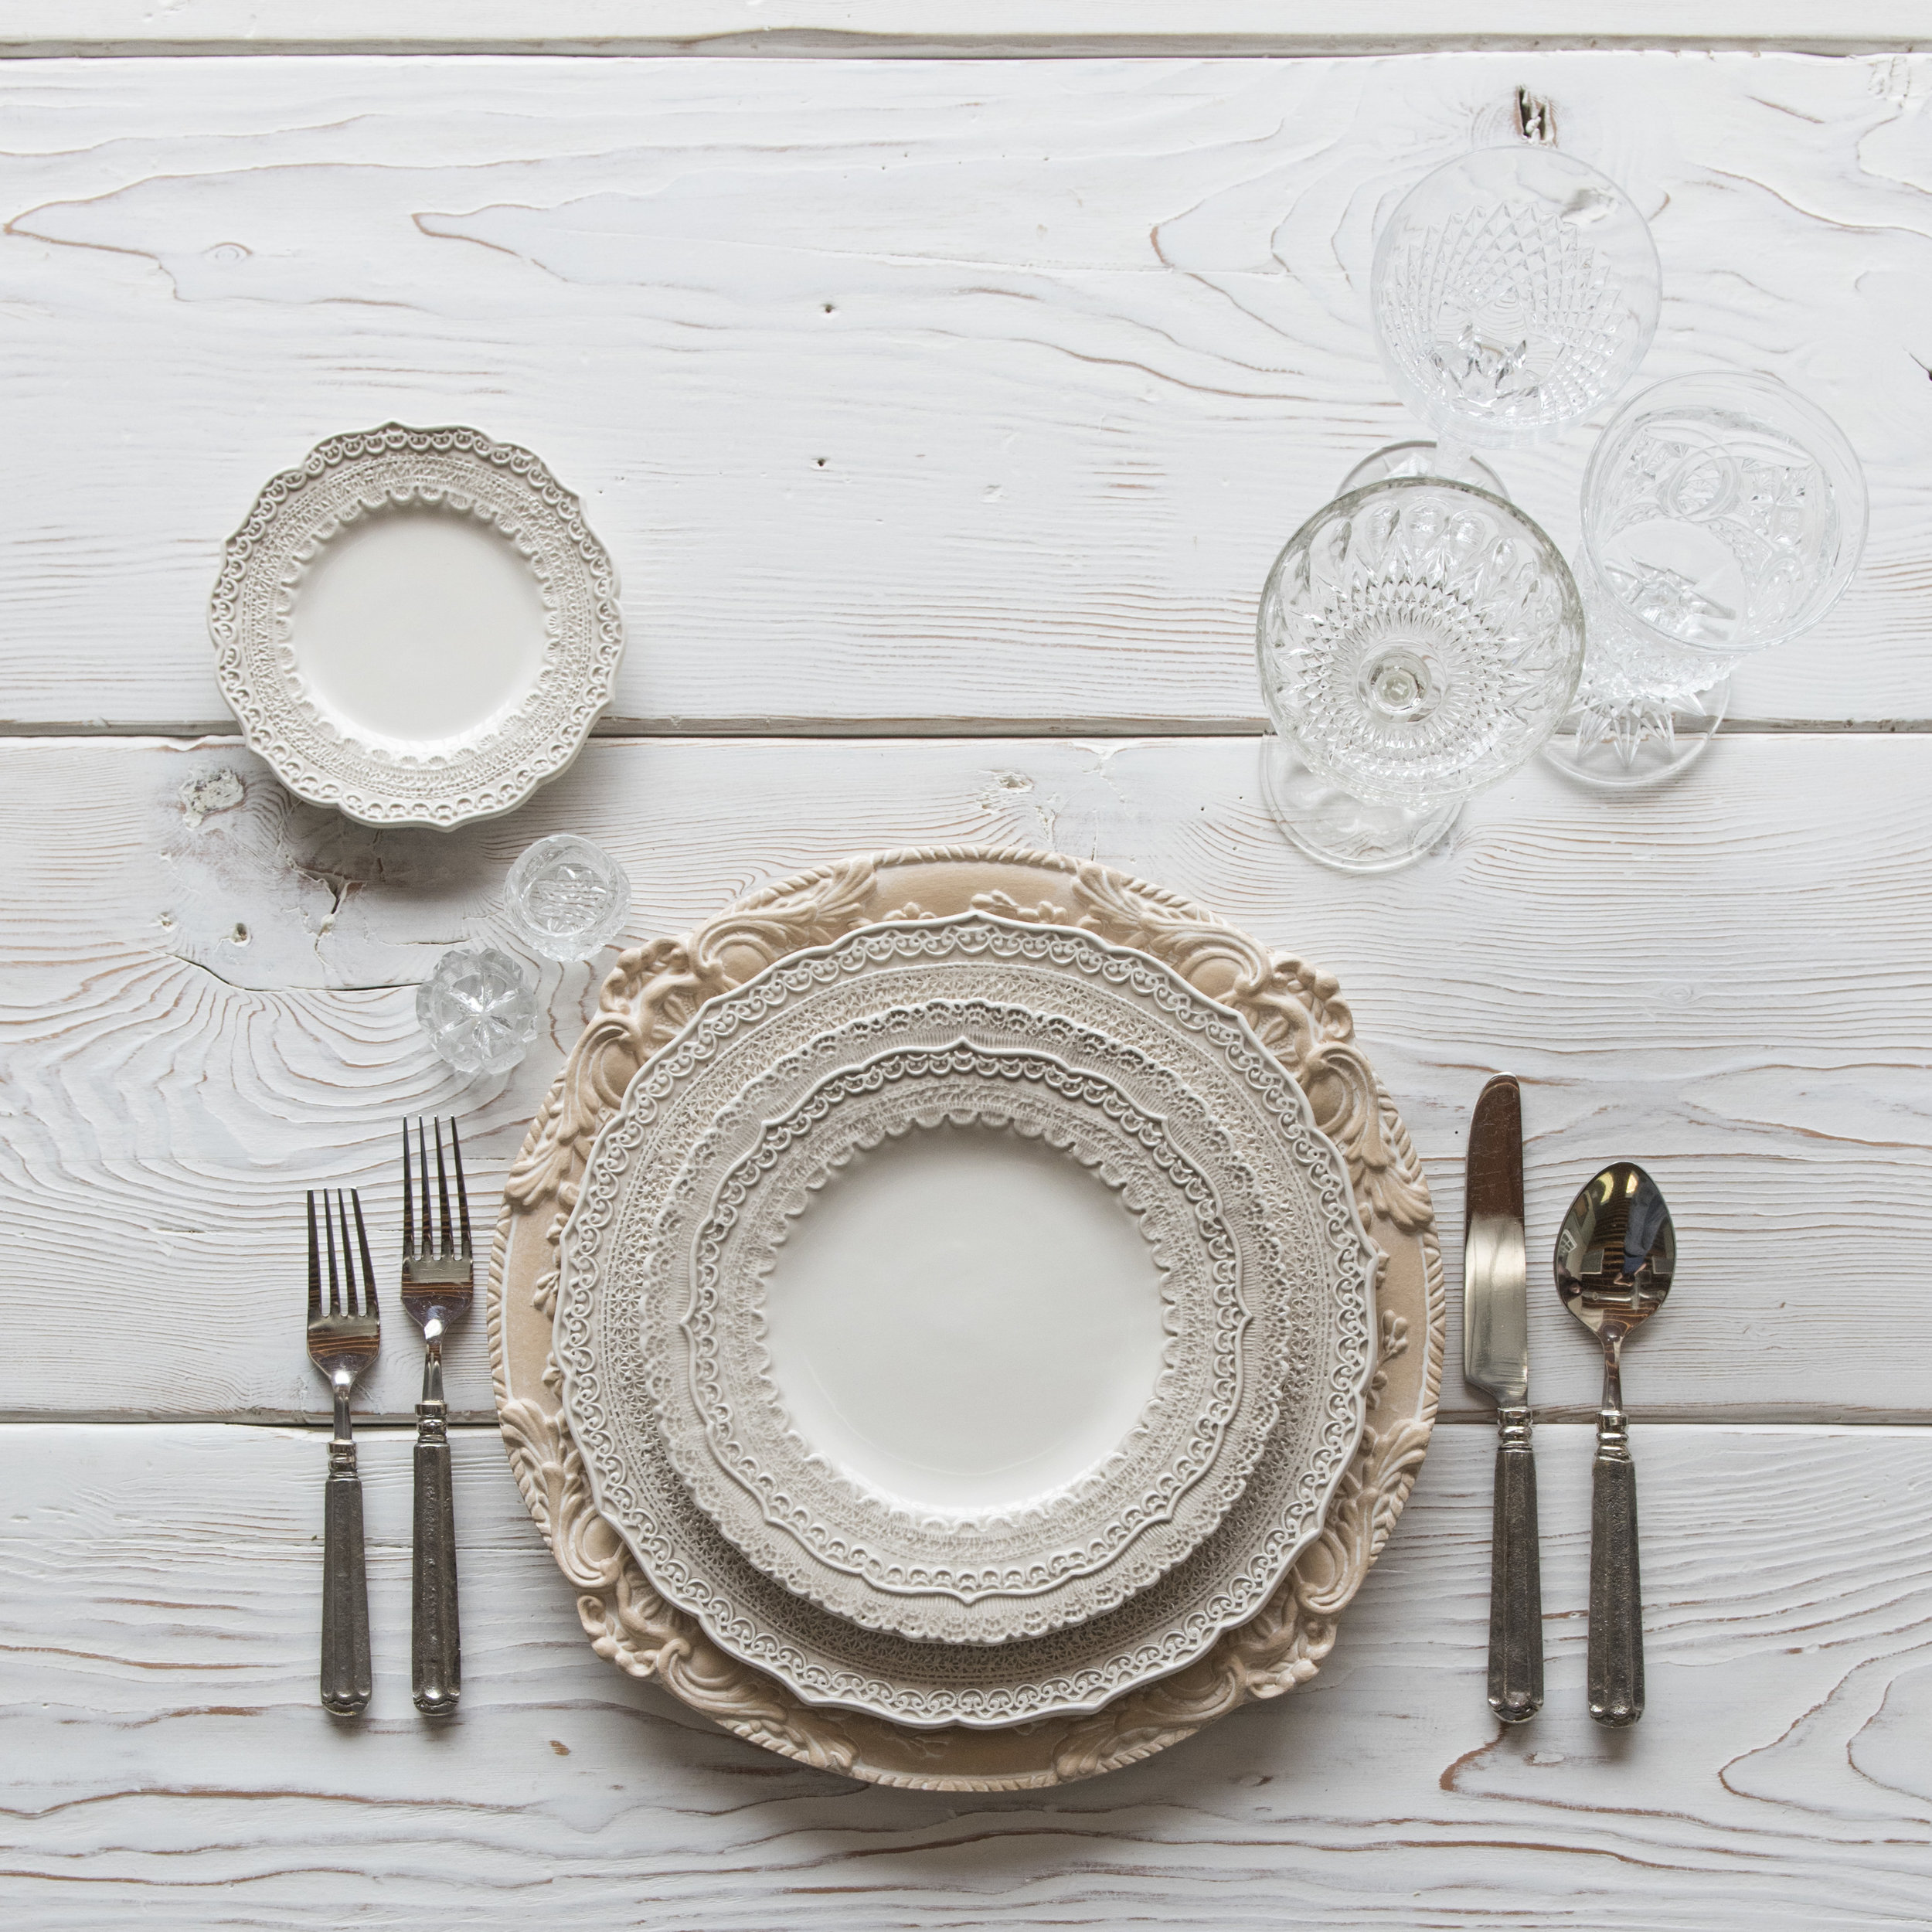 RENT: Verona Chargers in Terracotta + Lace Dinnerware in White + Tuscan Flatware in Pewter + Vintage Cut Crystal Goblets + Early American Pressed Glass Goblets + Antique Crystal Salt Cellars  SHOP:Verona Chargers in Terracotta